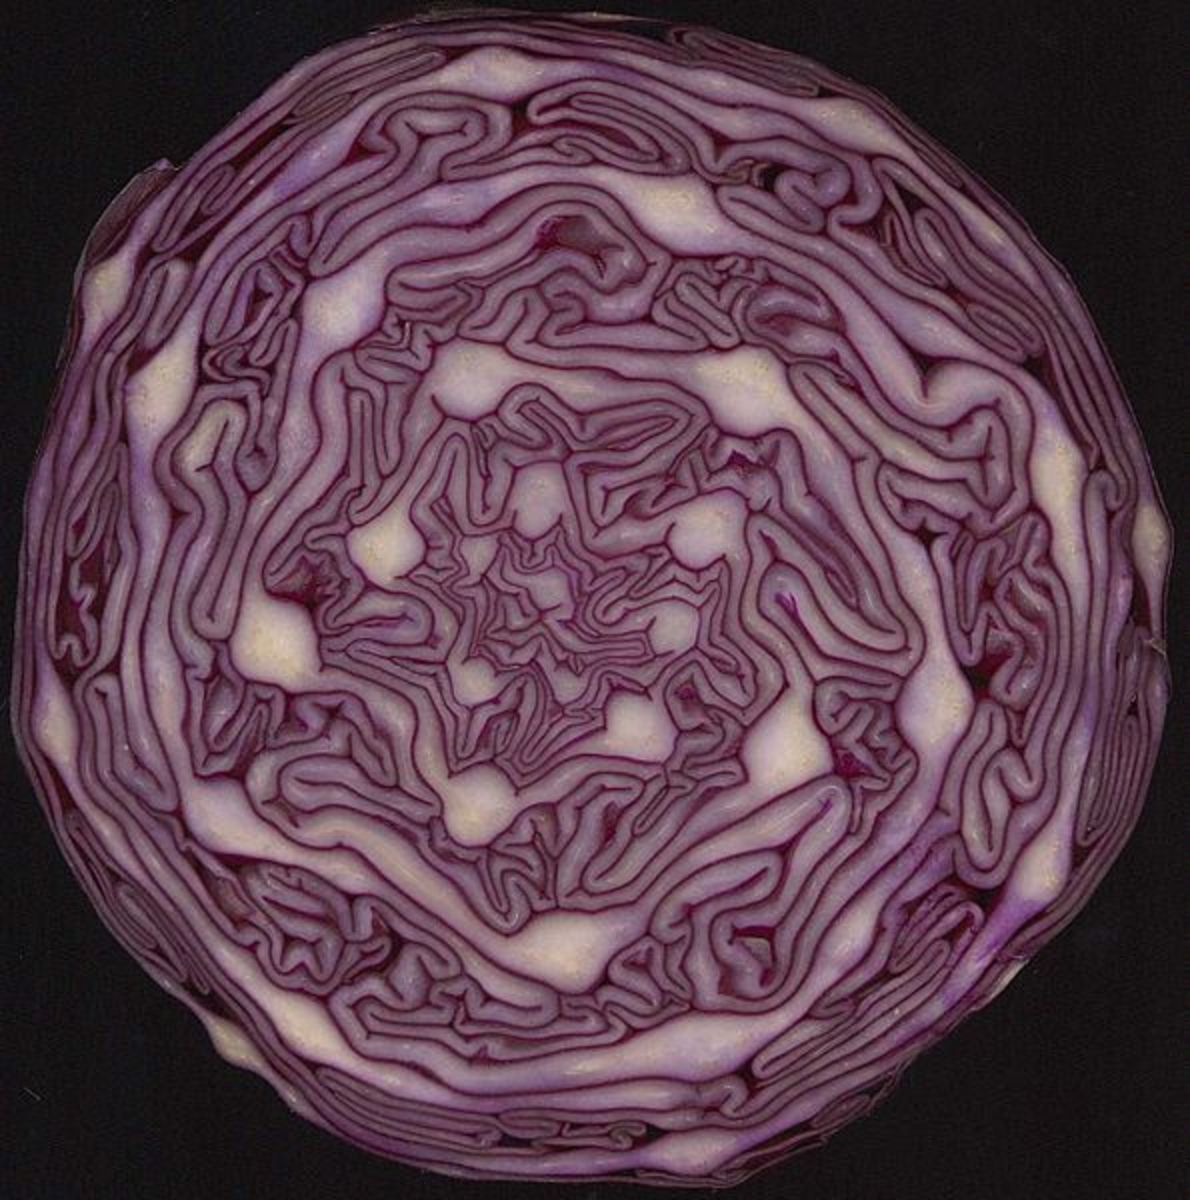 Cabbage has a beautiful color. The rich color is a sign of antioxidents like anthocyanin and others.